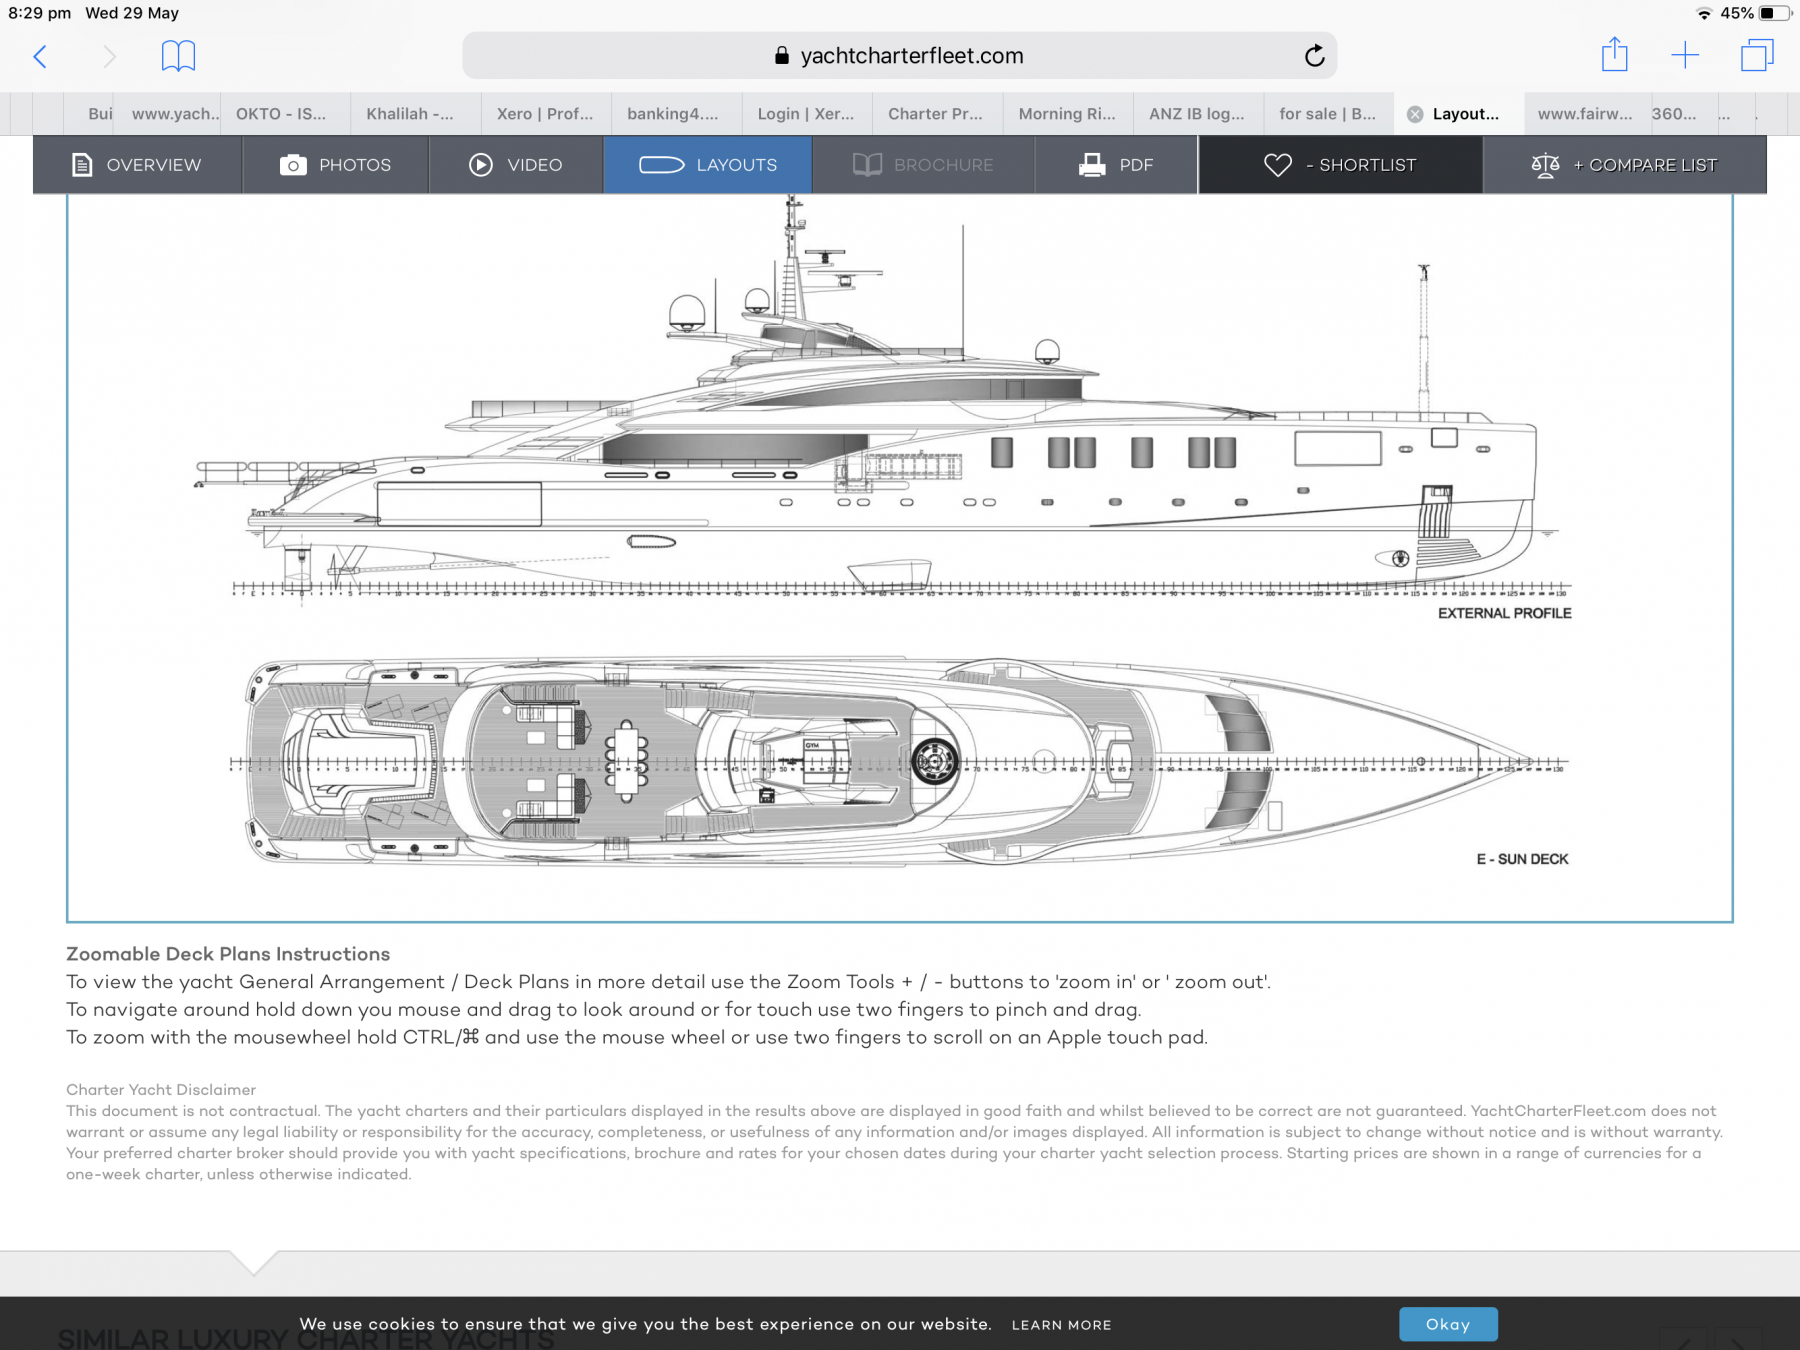 Sapphire by Omega1234 - 1/388 scale - Mega-yacht 66m (8 inch